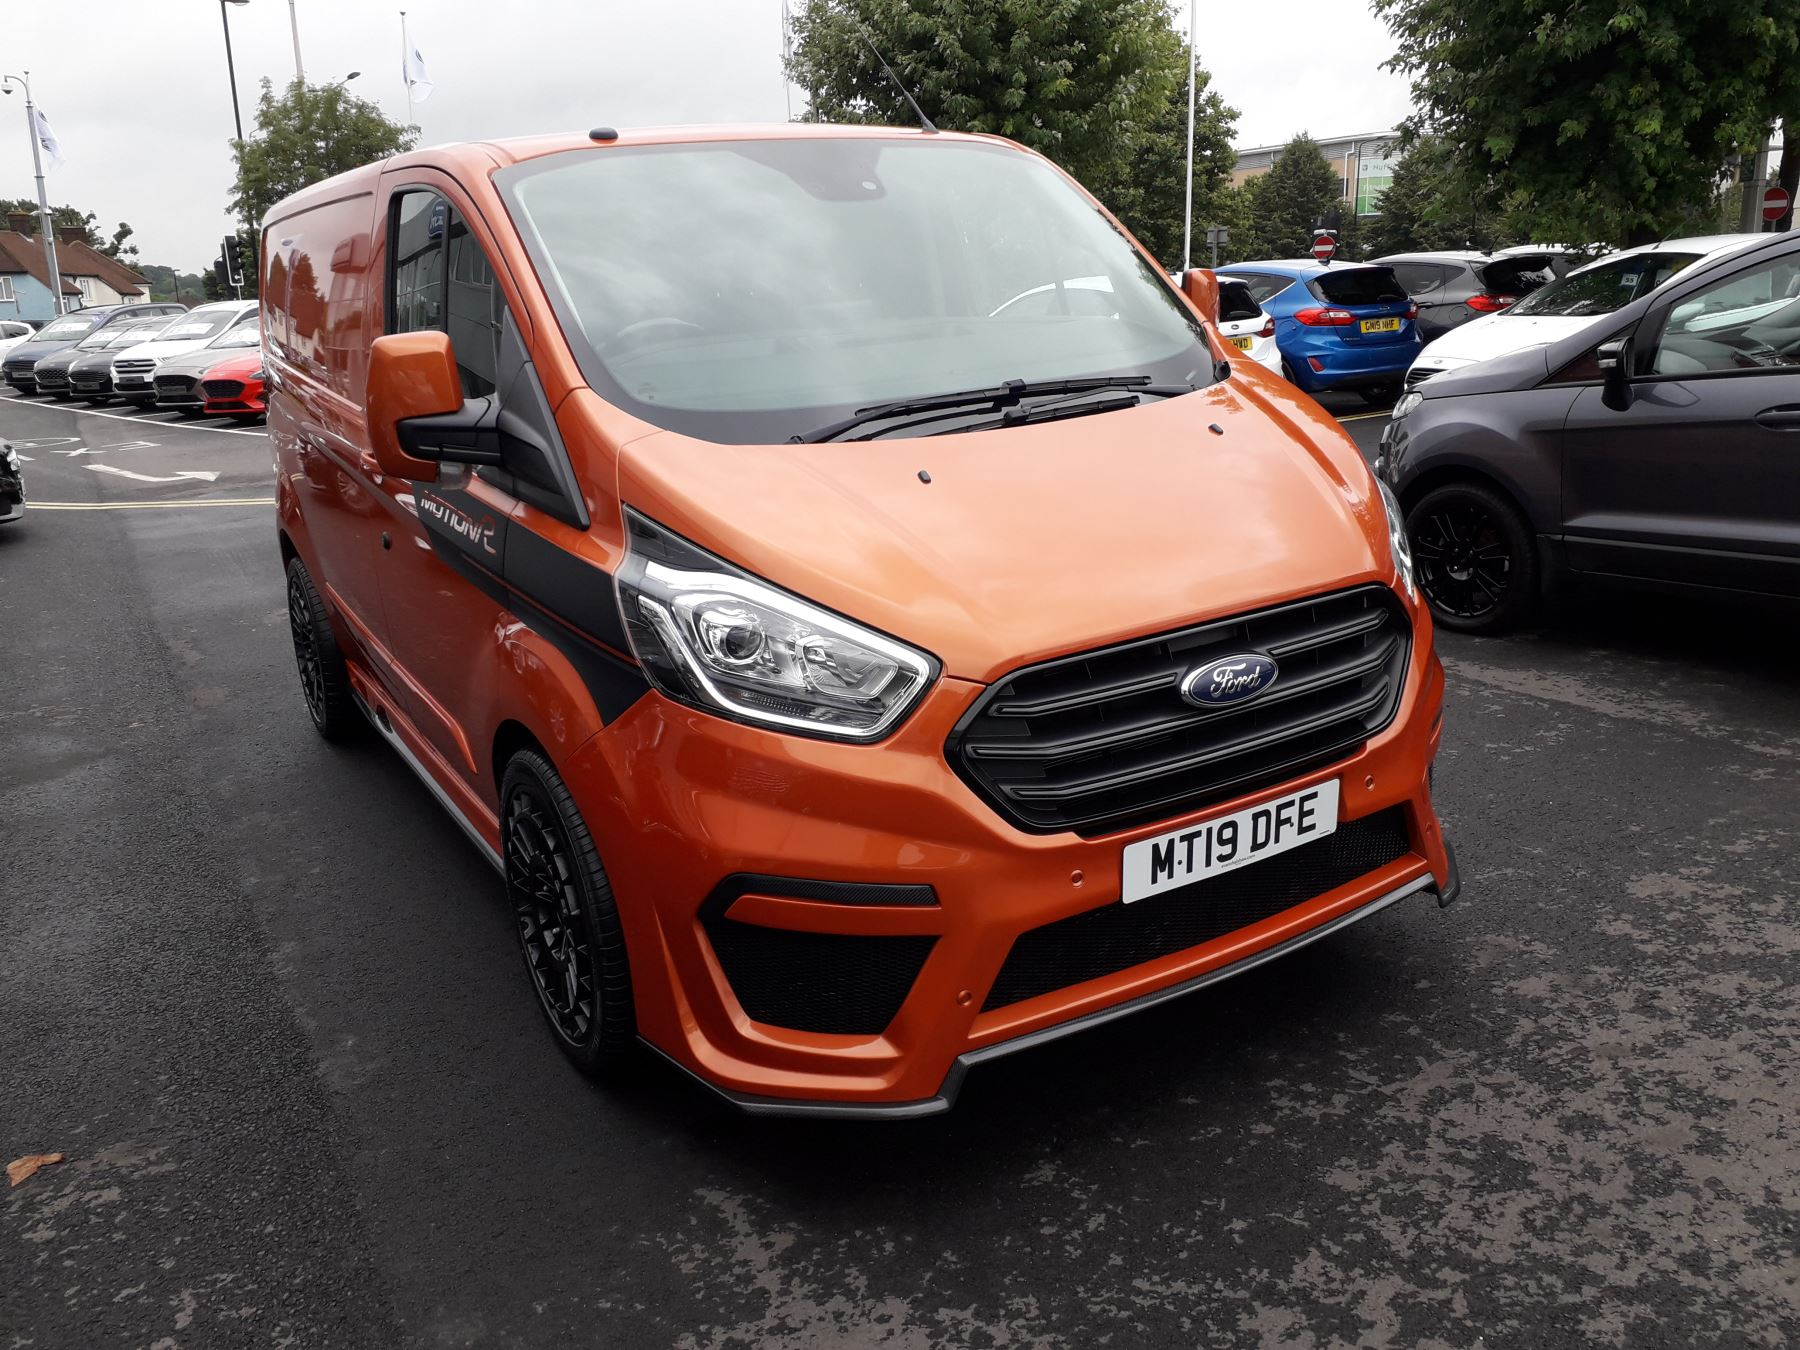 Ford Transit Custom 280 L1 Motion R 130PS Euro 6 image 1